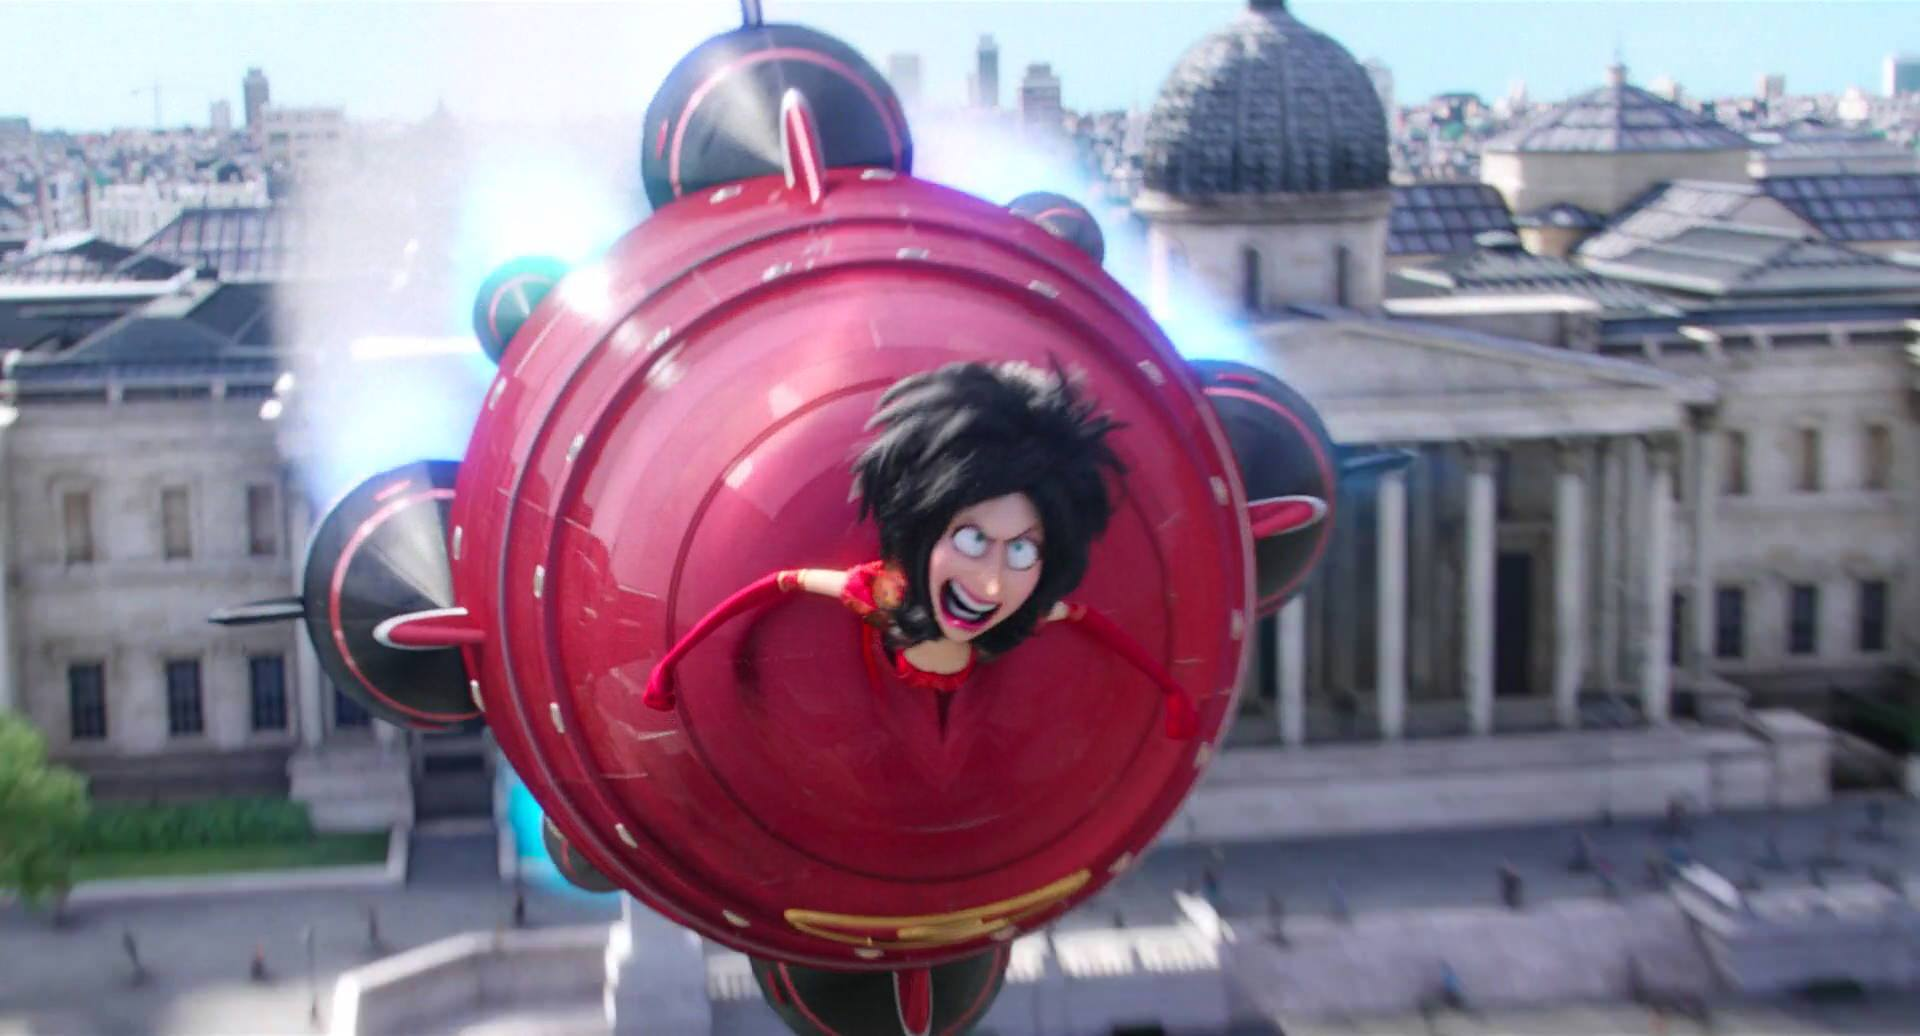 Fig. 1 - Character Scarlet Overkill flying with her clever space rocket dress in  Minions.